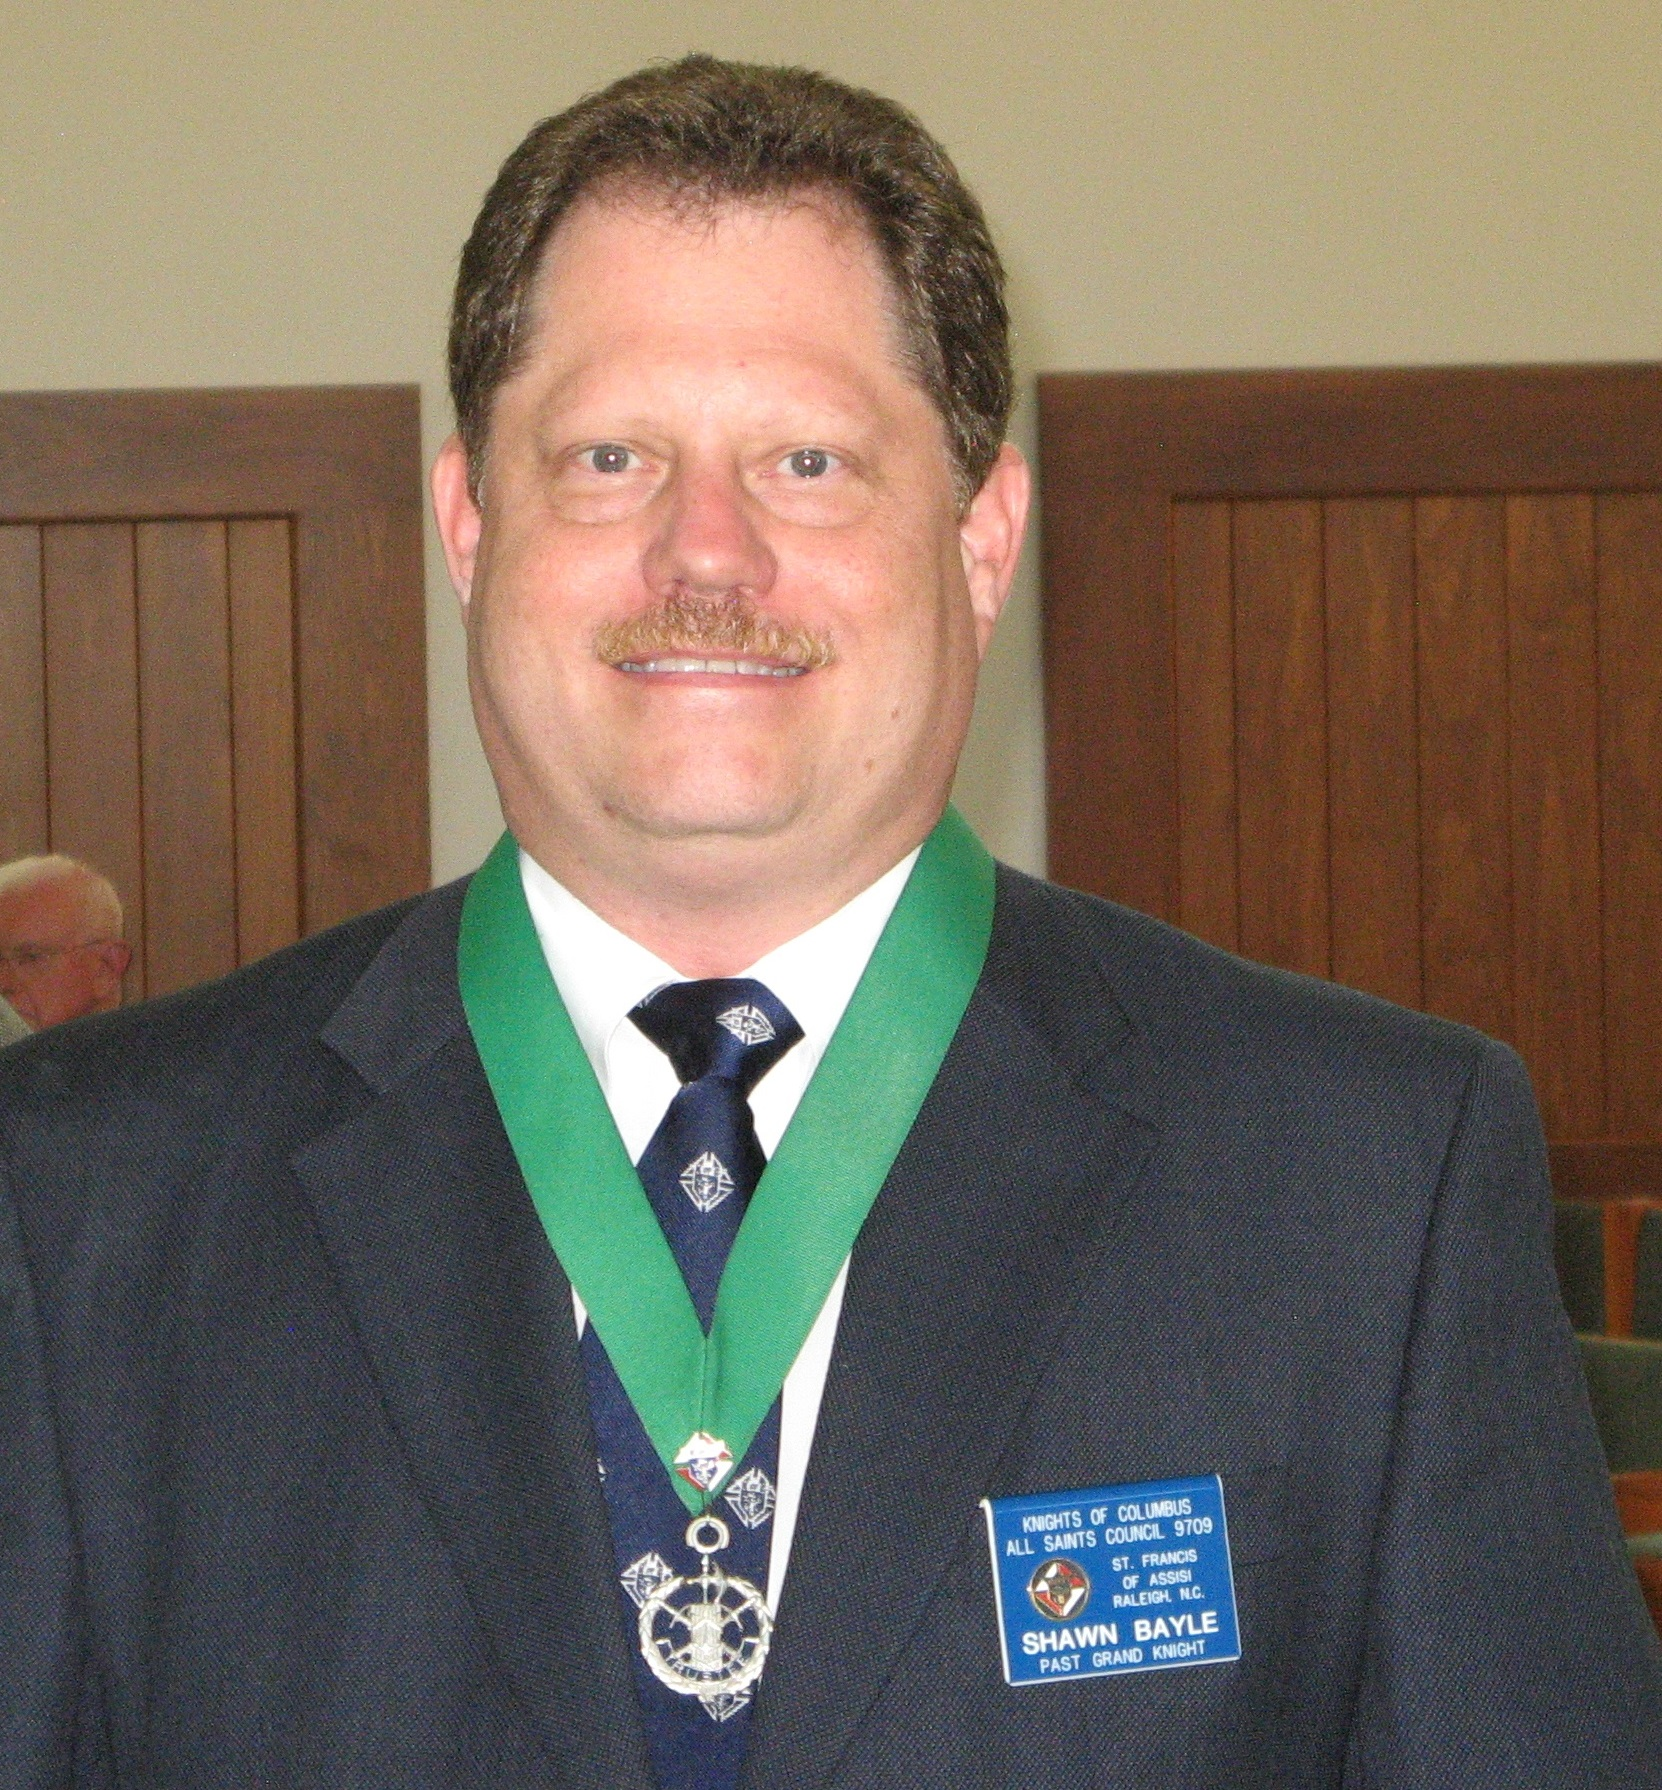 image of MEMBERSHIP DIRECTOR